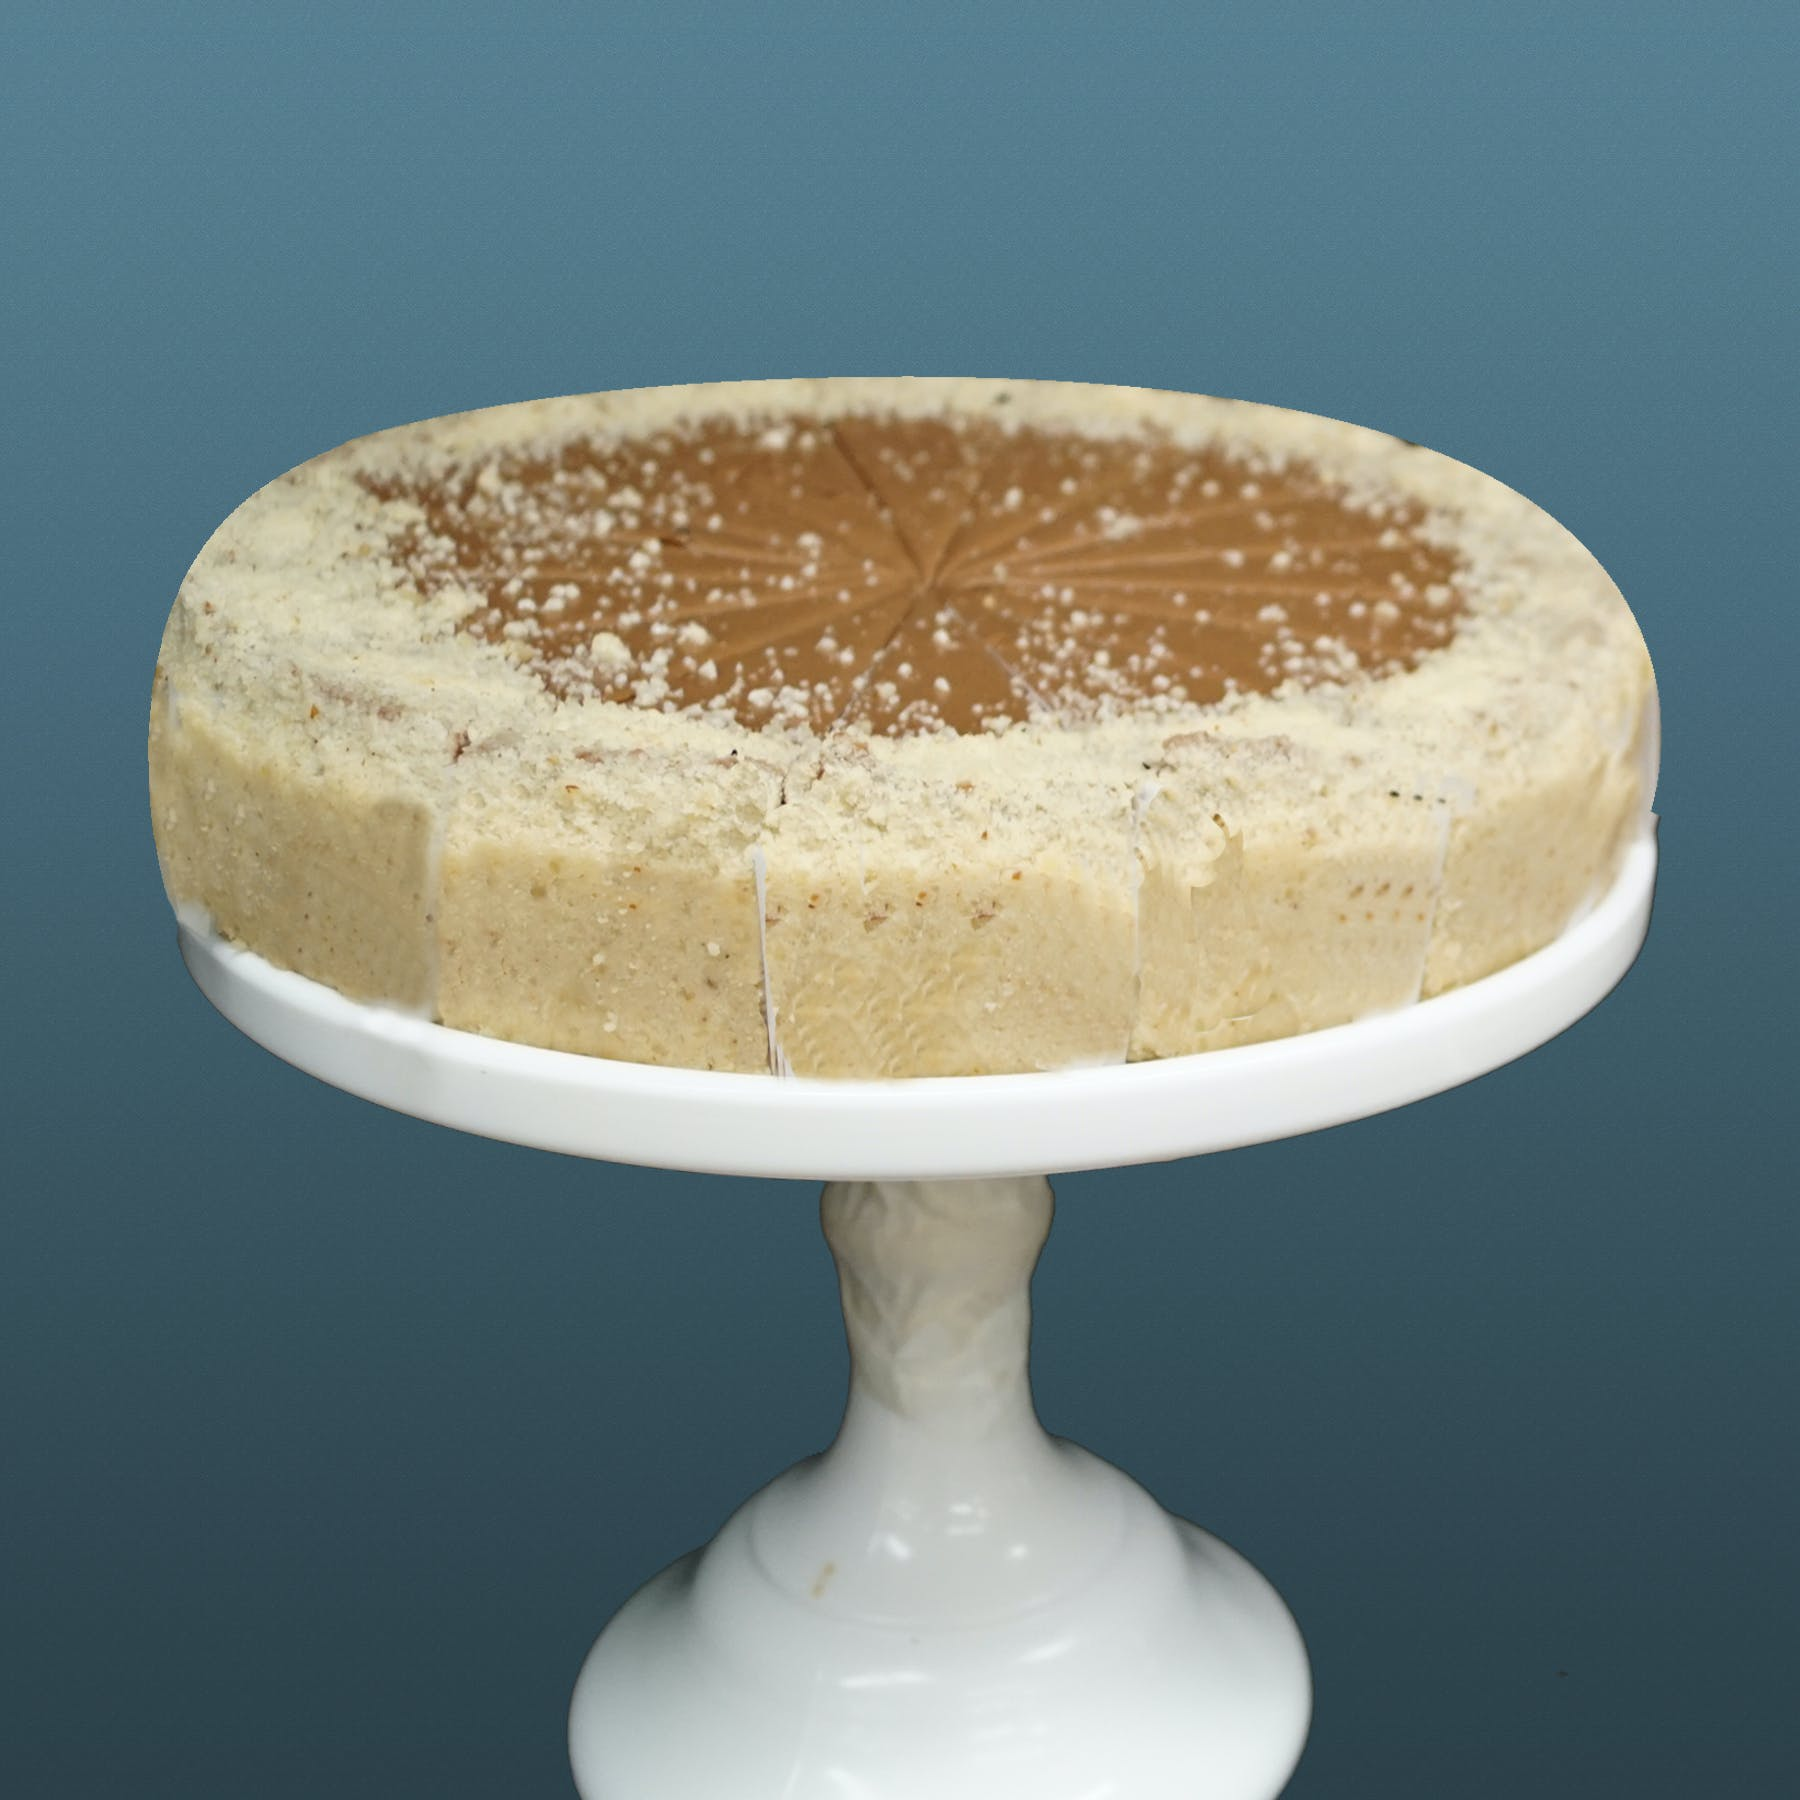 Chocolate Amaretto Cheesecake 9 By The Nuns Of New Skete Goldbelly